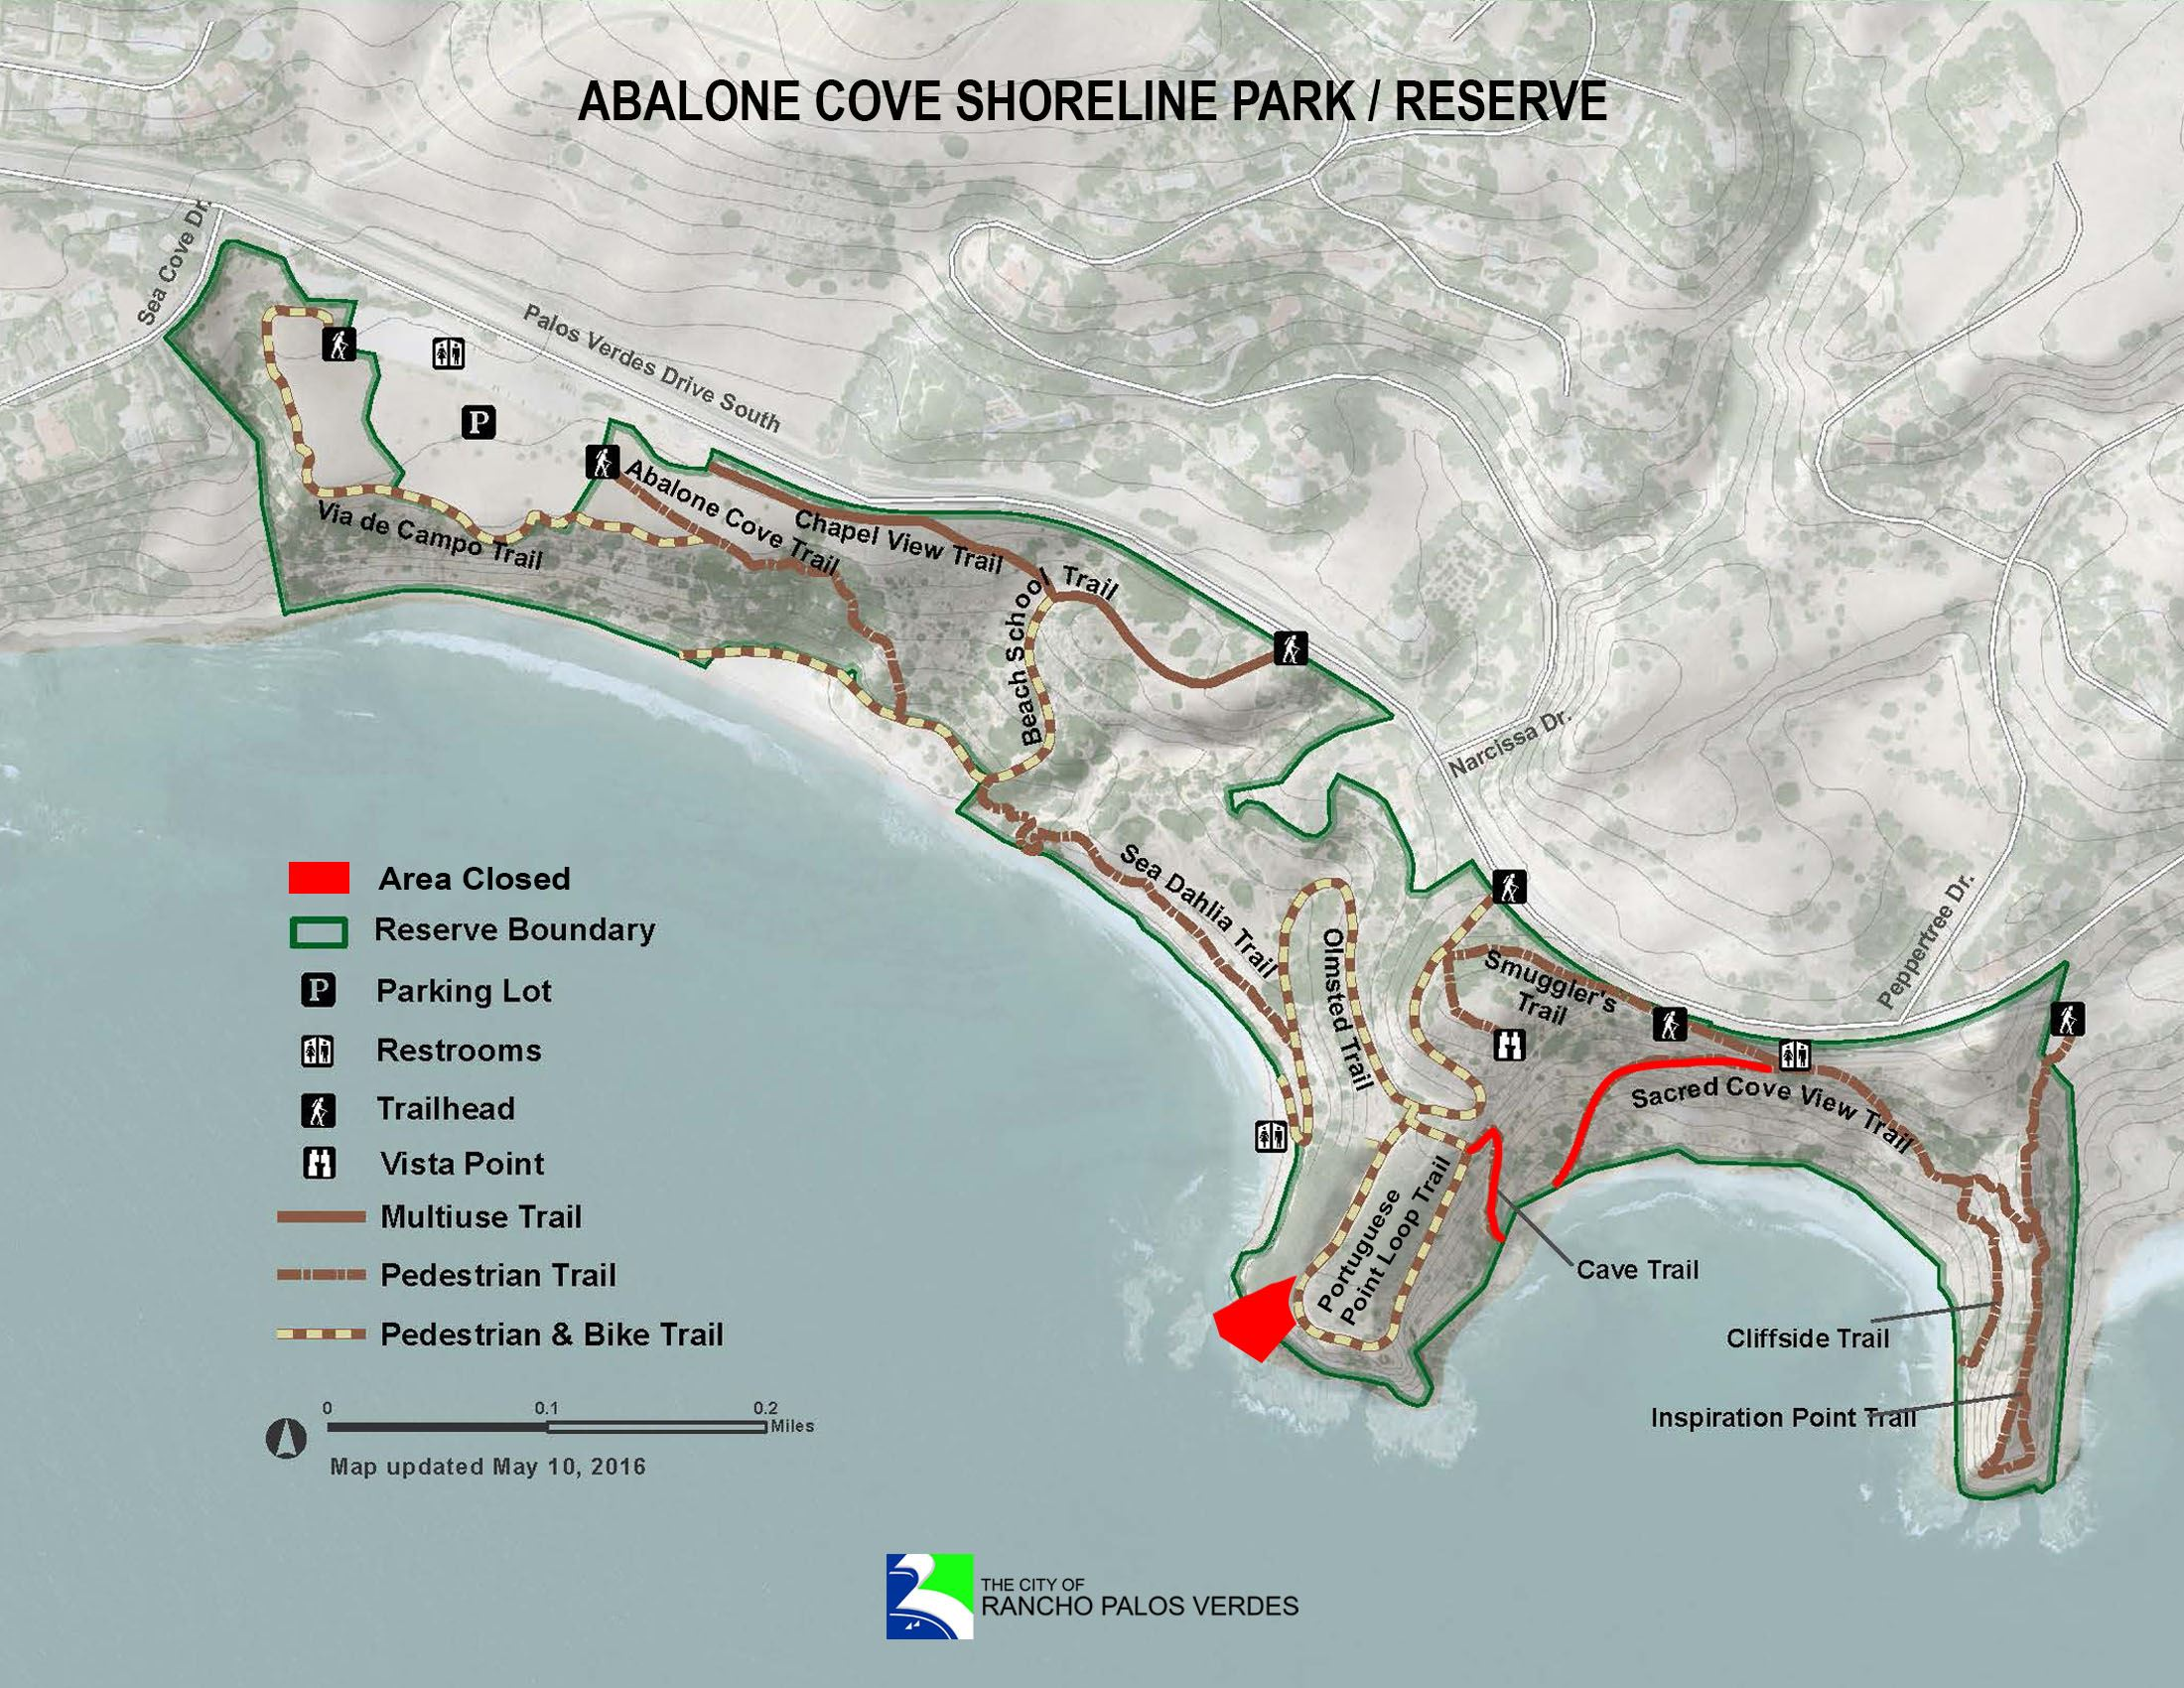 Ab Cove Closures